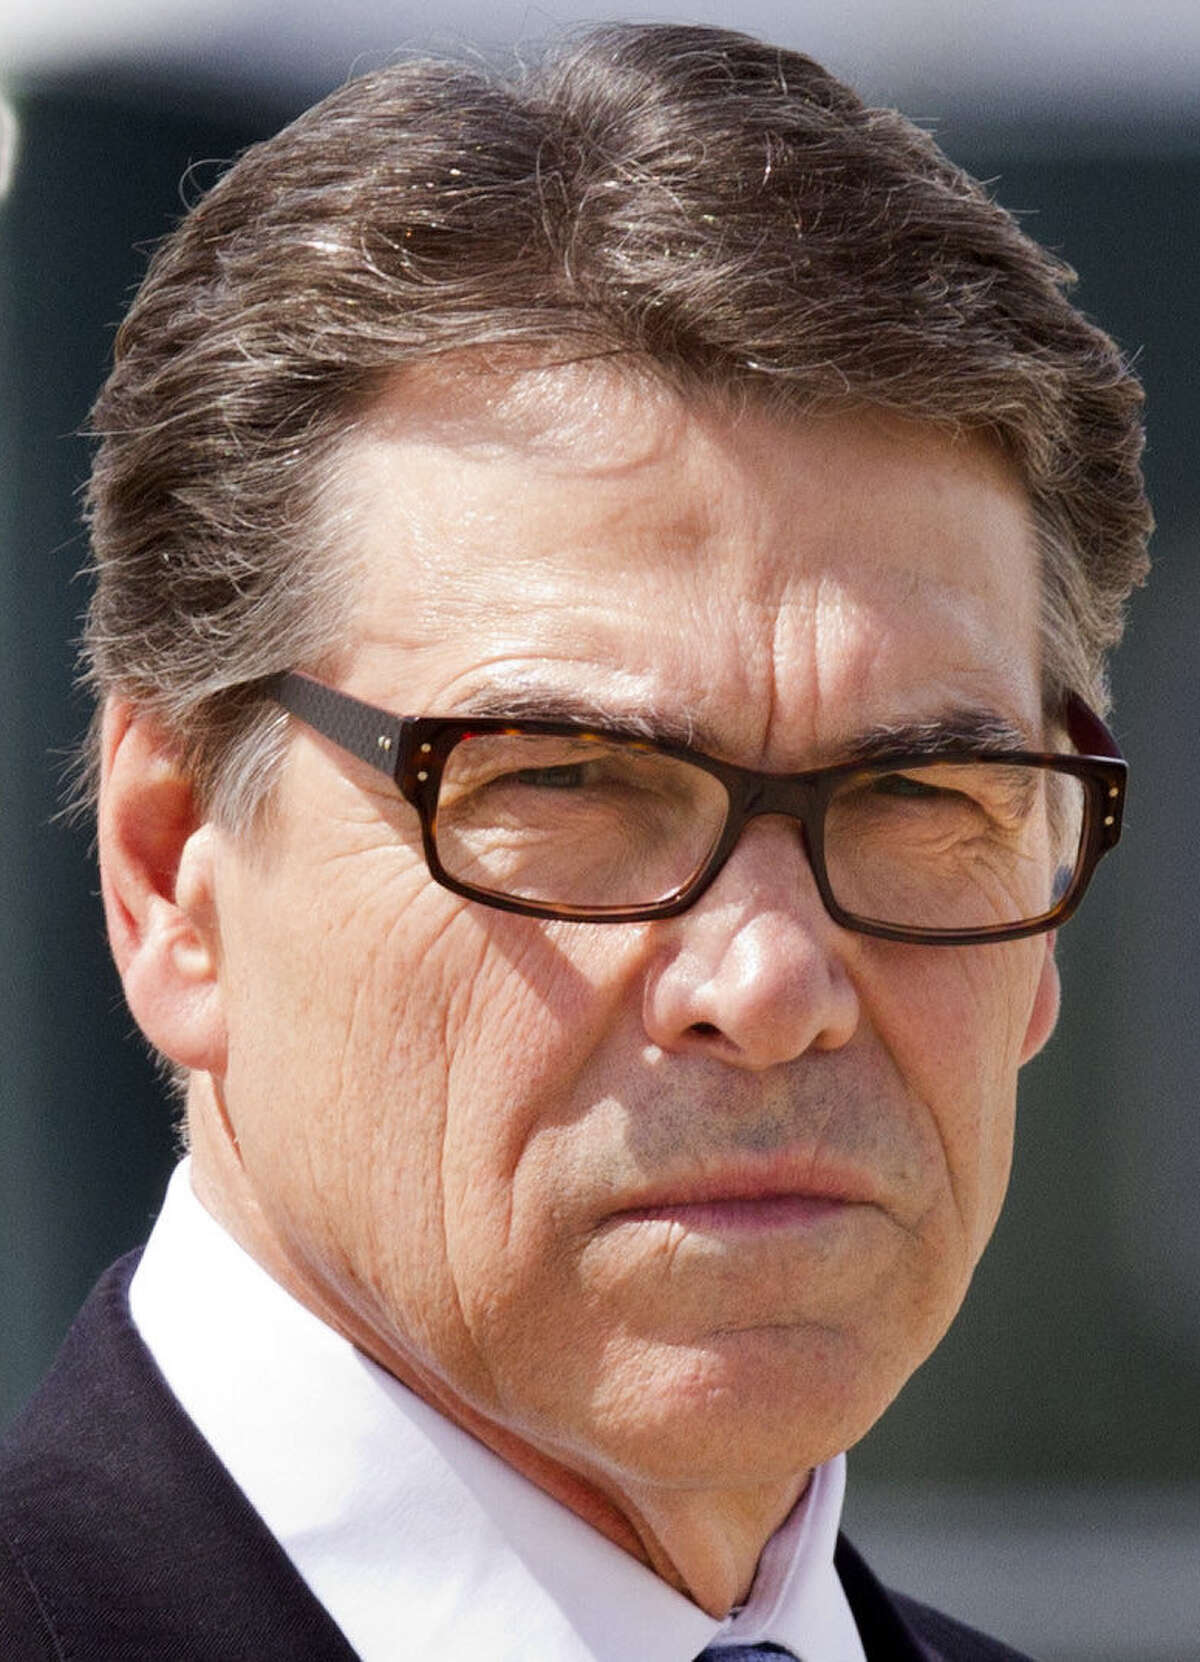 Texas Gov. Rick Perry is a potential Republican presidential candidate in 2016.